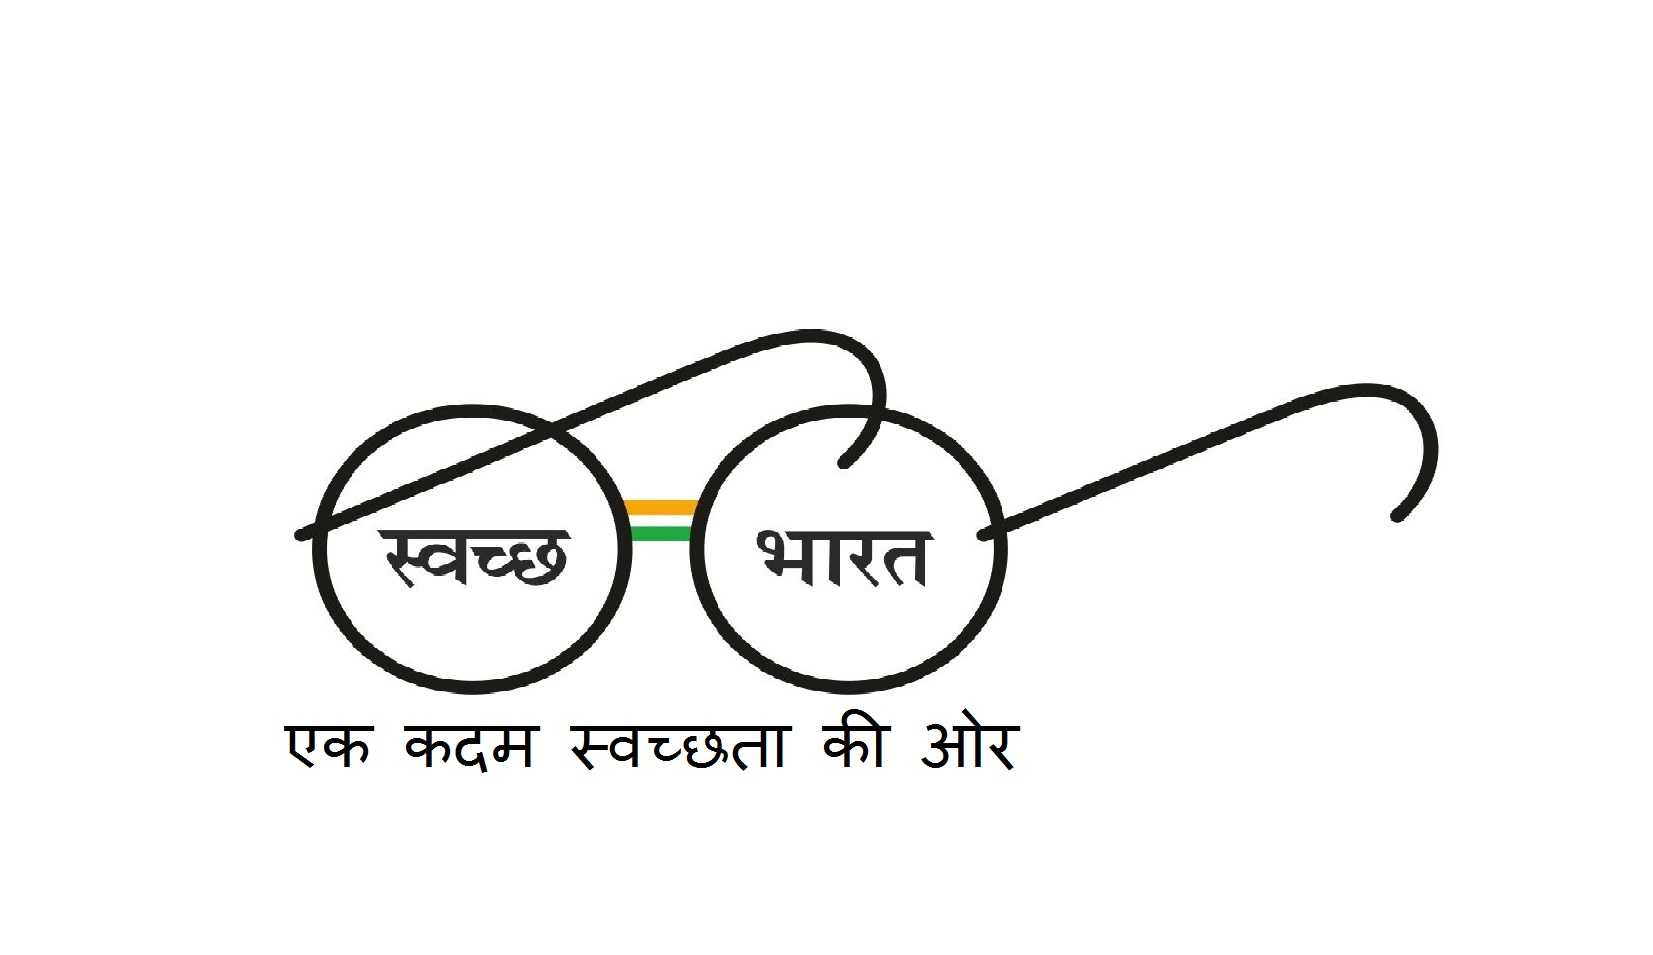 Waste Management Project & Swachha Bharat Abhiyan